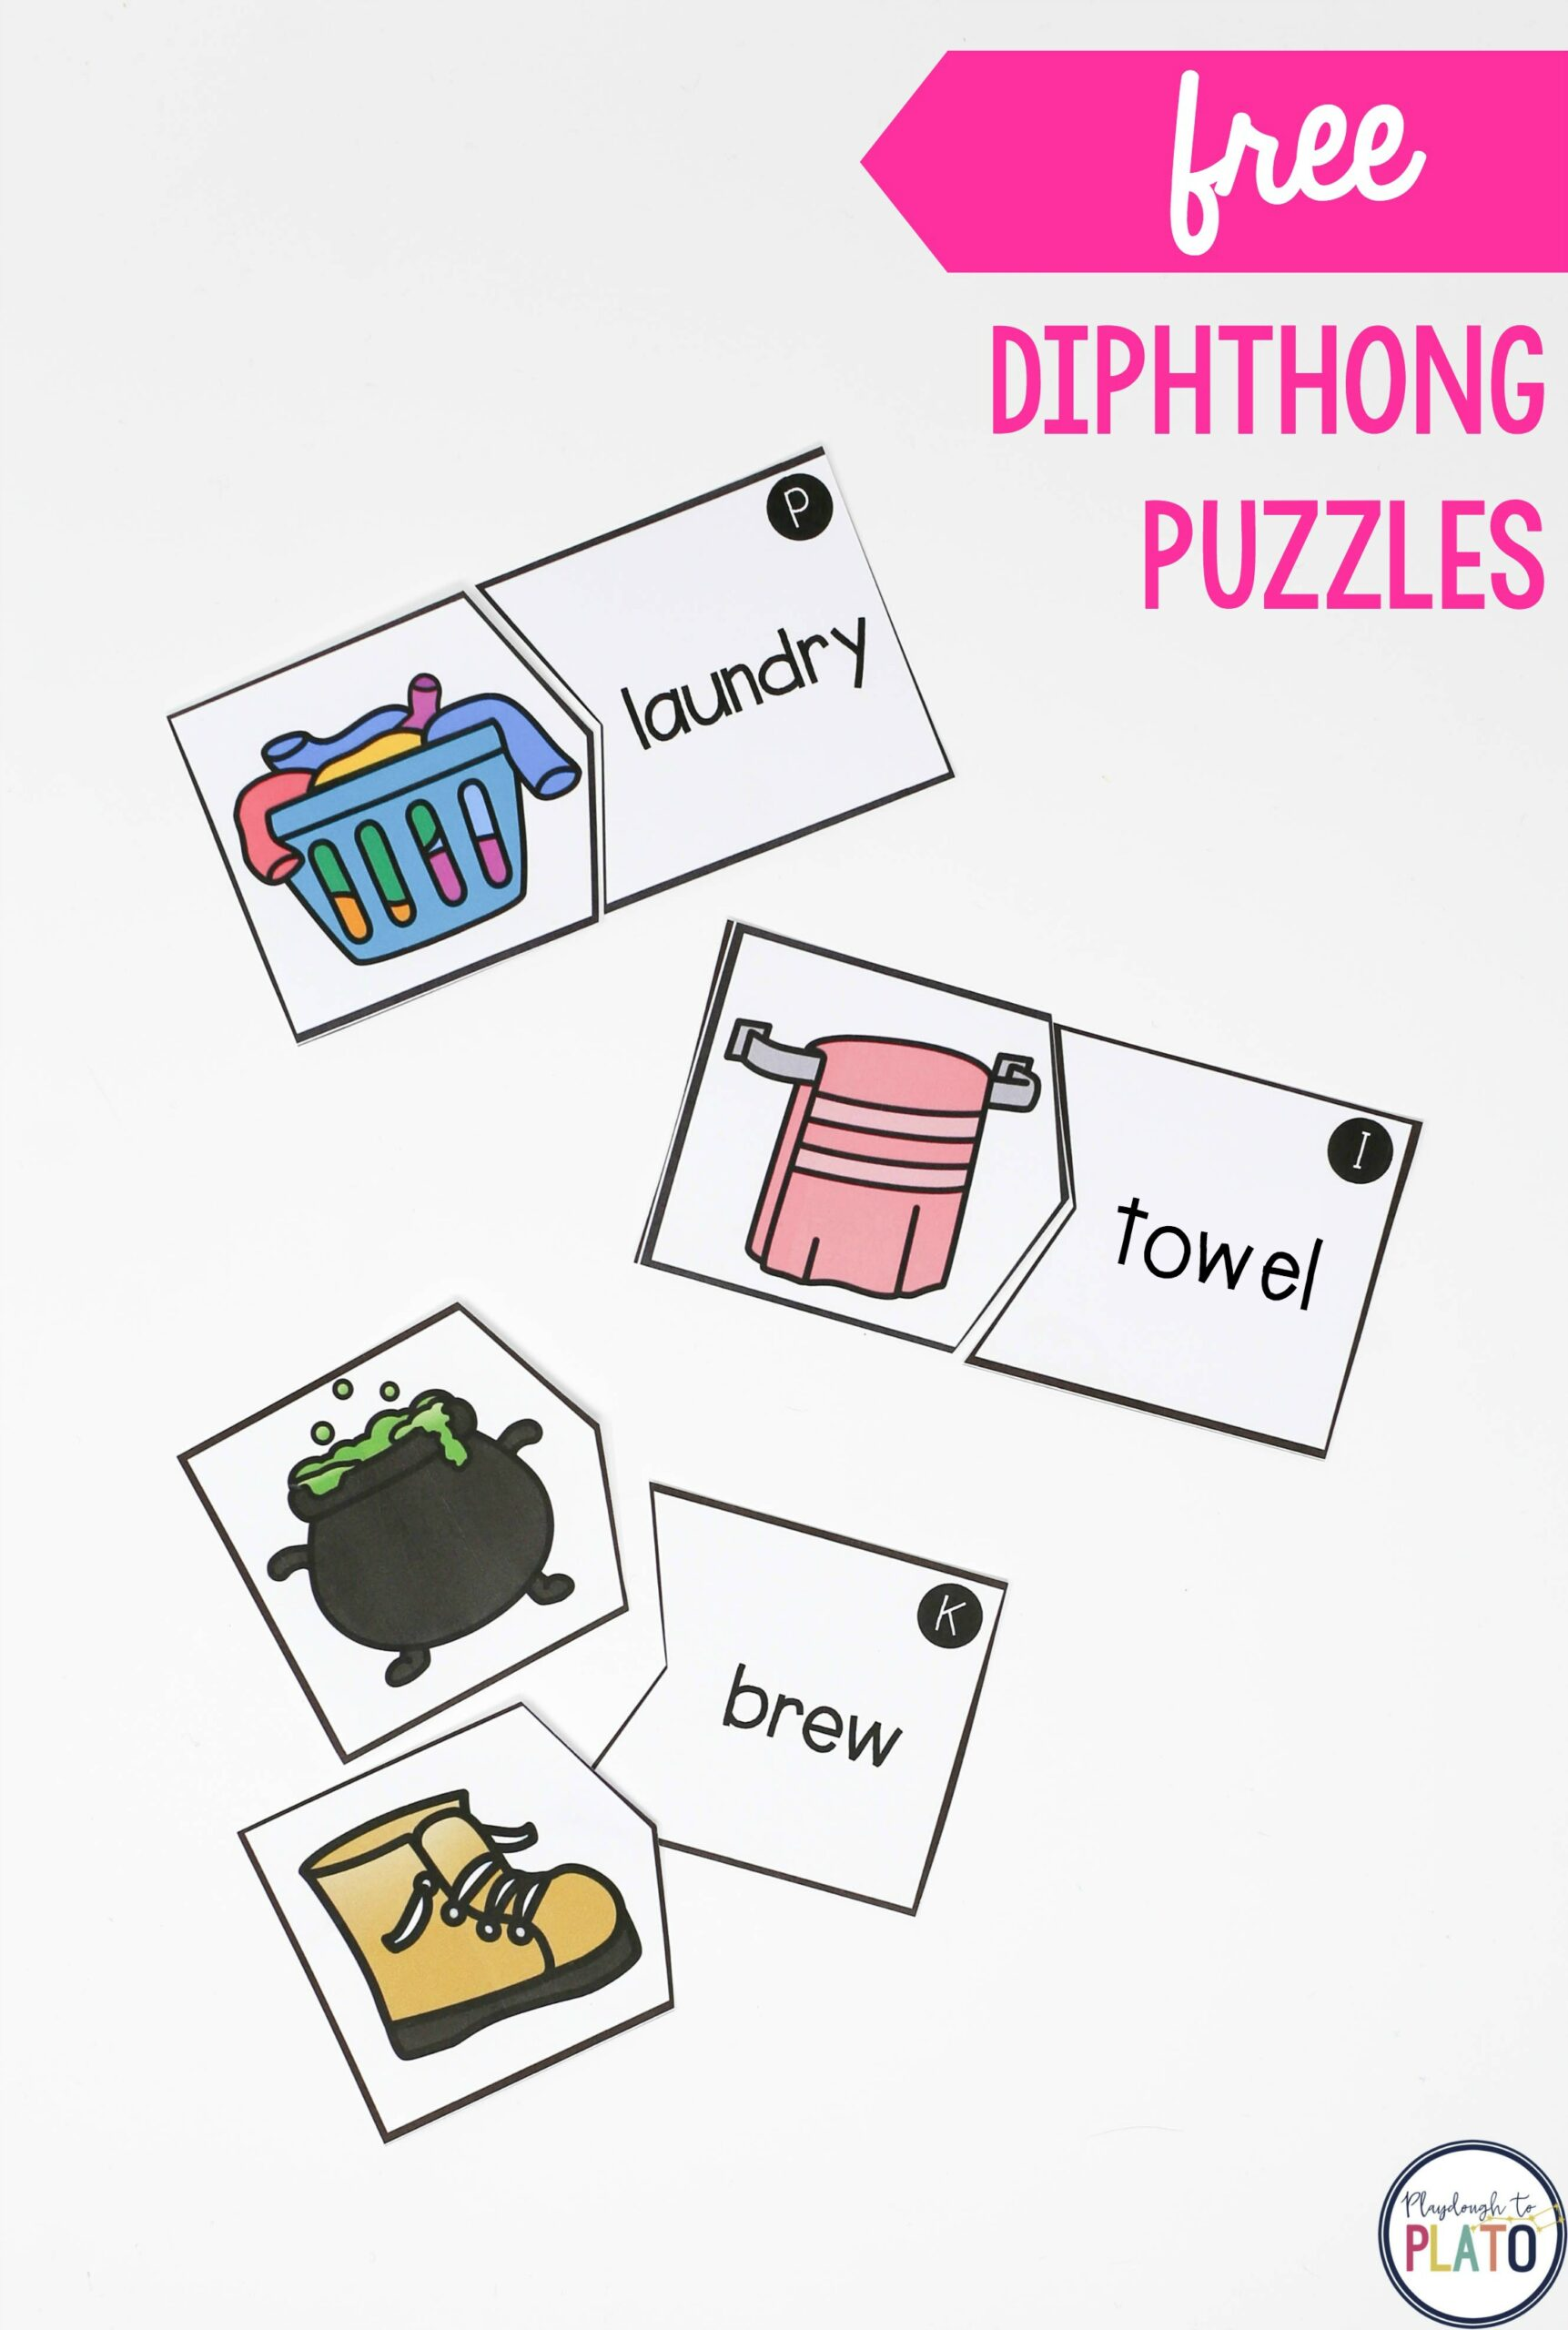 Diphthong Puzzles